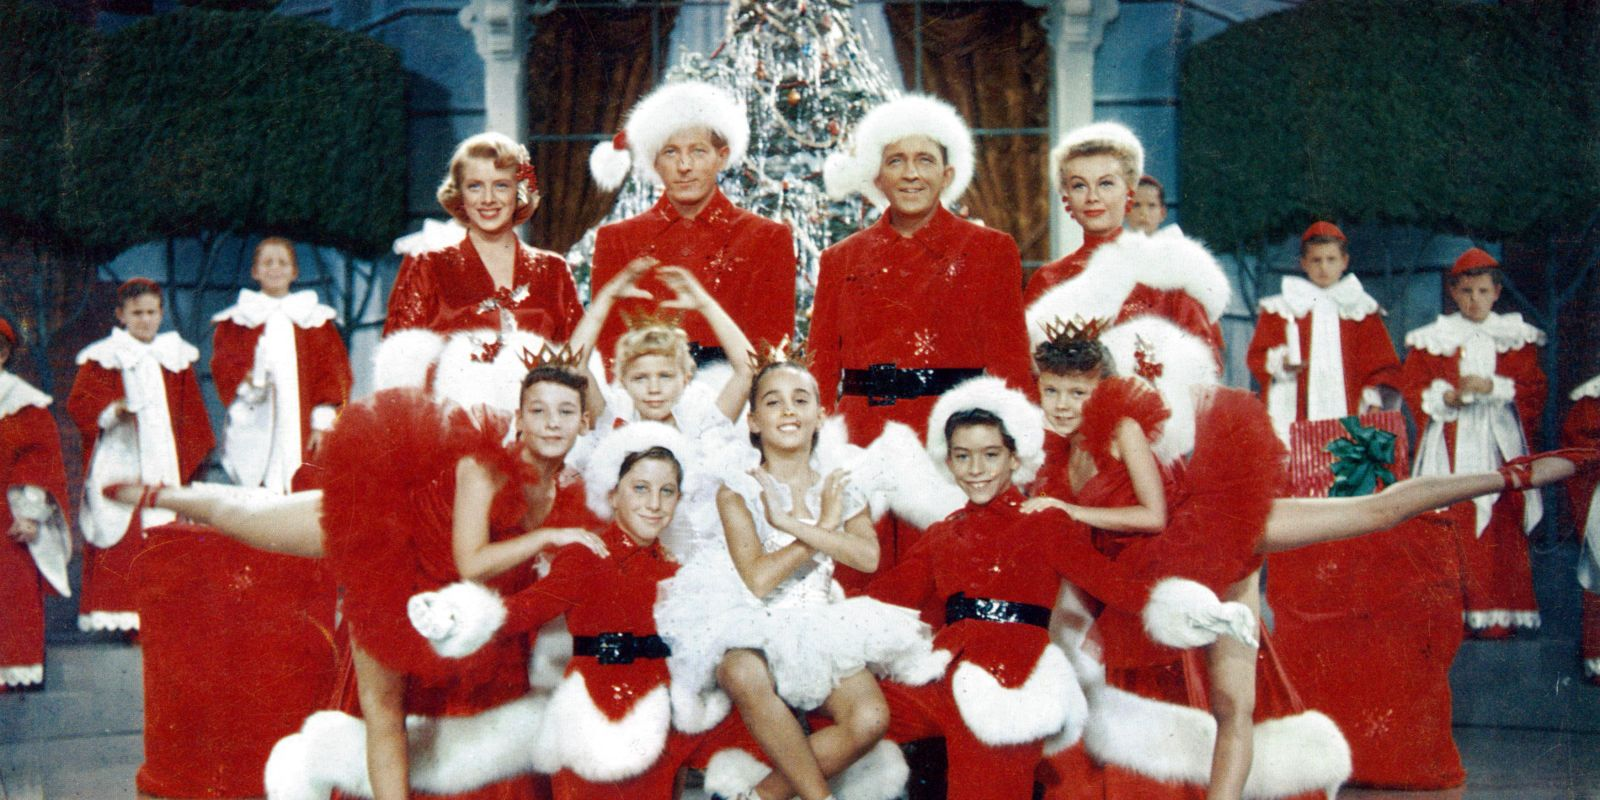 Everyone Missed The Moment Vera Ellen Almost Tripped In Iconic White Christmas Scene White Christmas Movie Best Christmas Movies Classic Christmas Movies